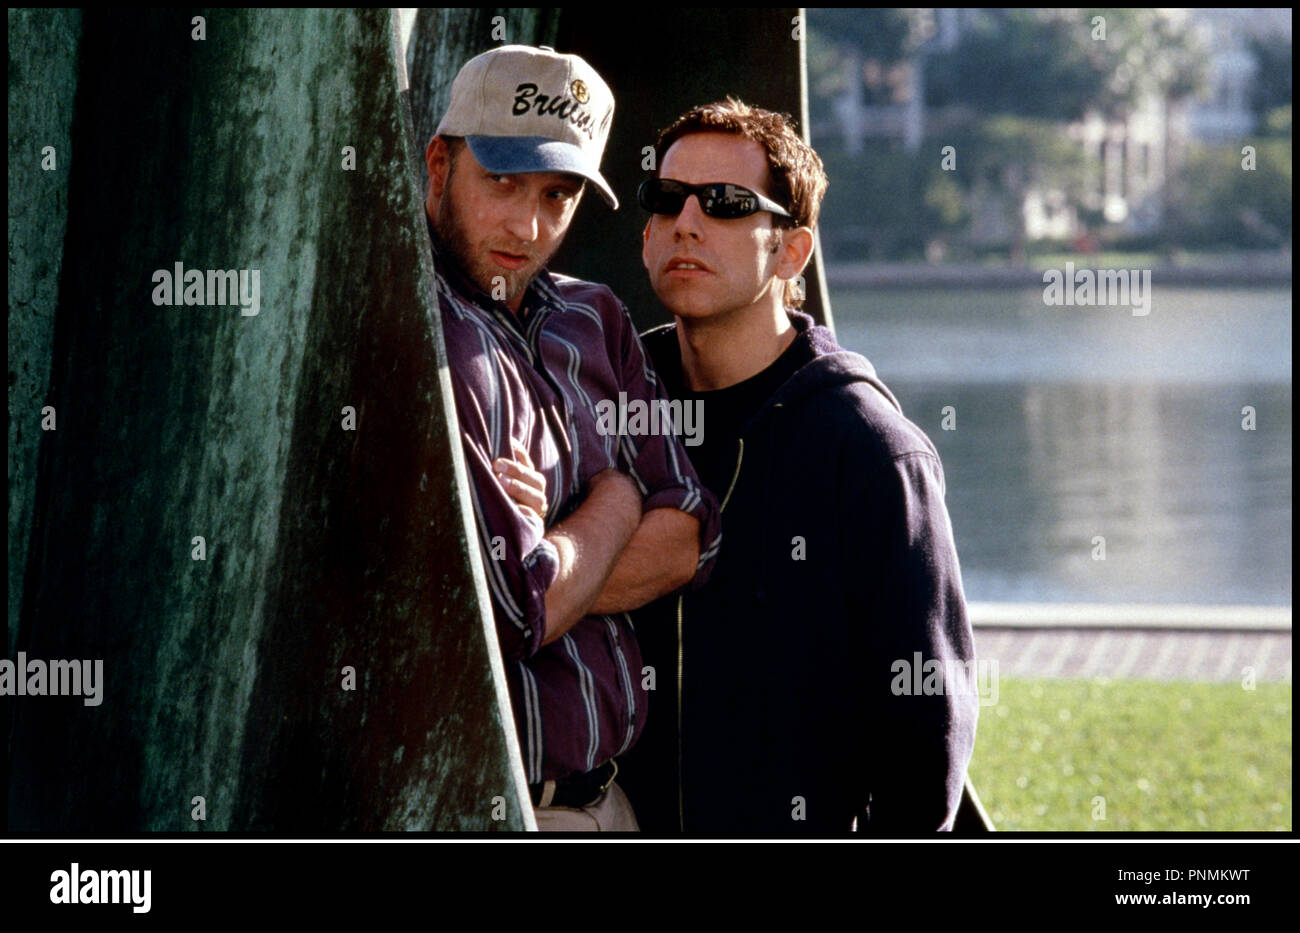 Prod DB © 20th Century Fox /DR MARY A TOUT PRIX (THERE'S SOMETHING ABOUT MARY) de Bobby et Peter Farrelly 1998 USA avec Chris Elliot et Ben Stiller observer, se cacher derriere un arbre, epier, faire le guet - Stock Image